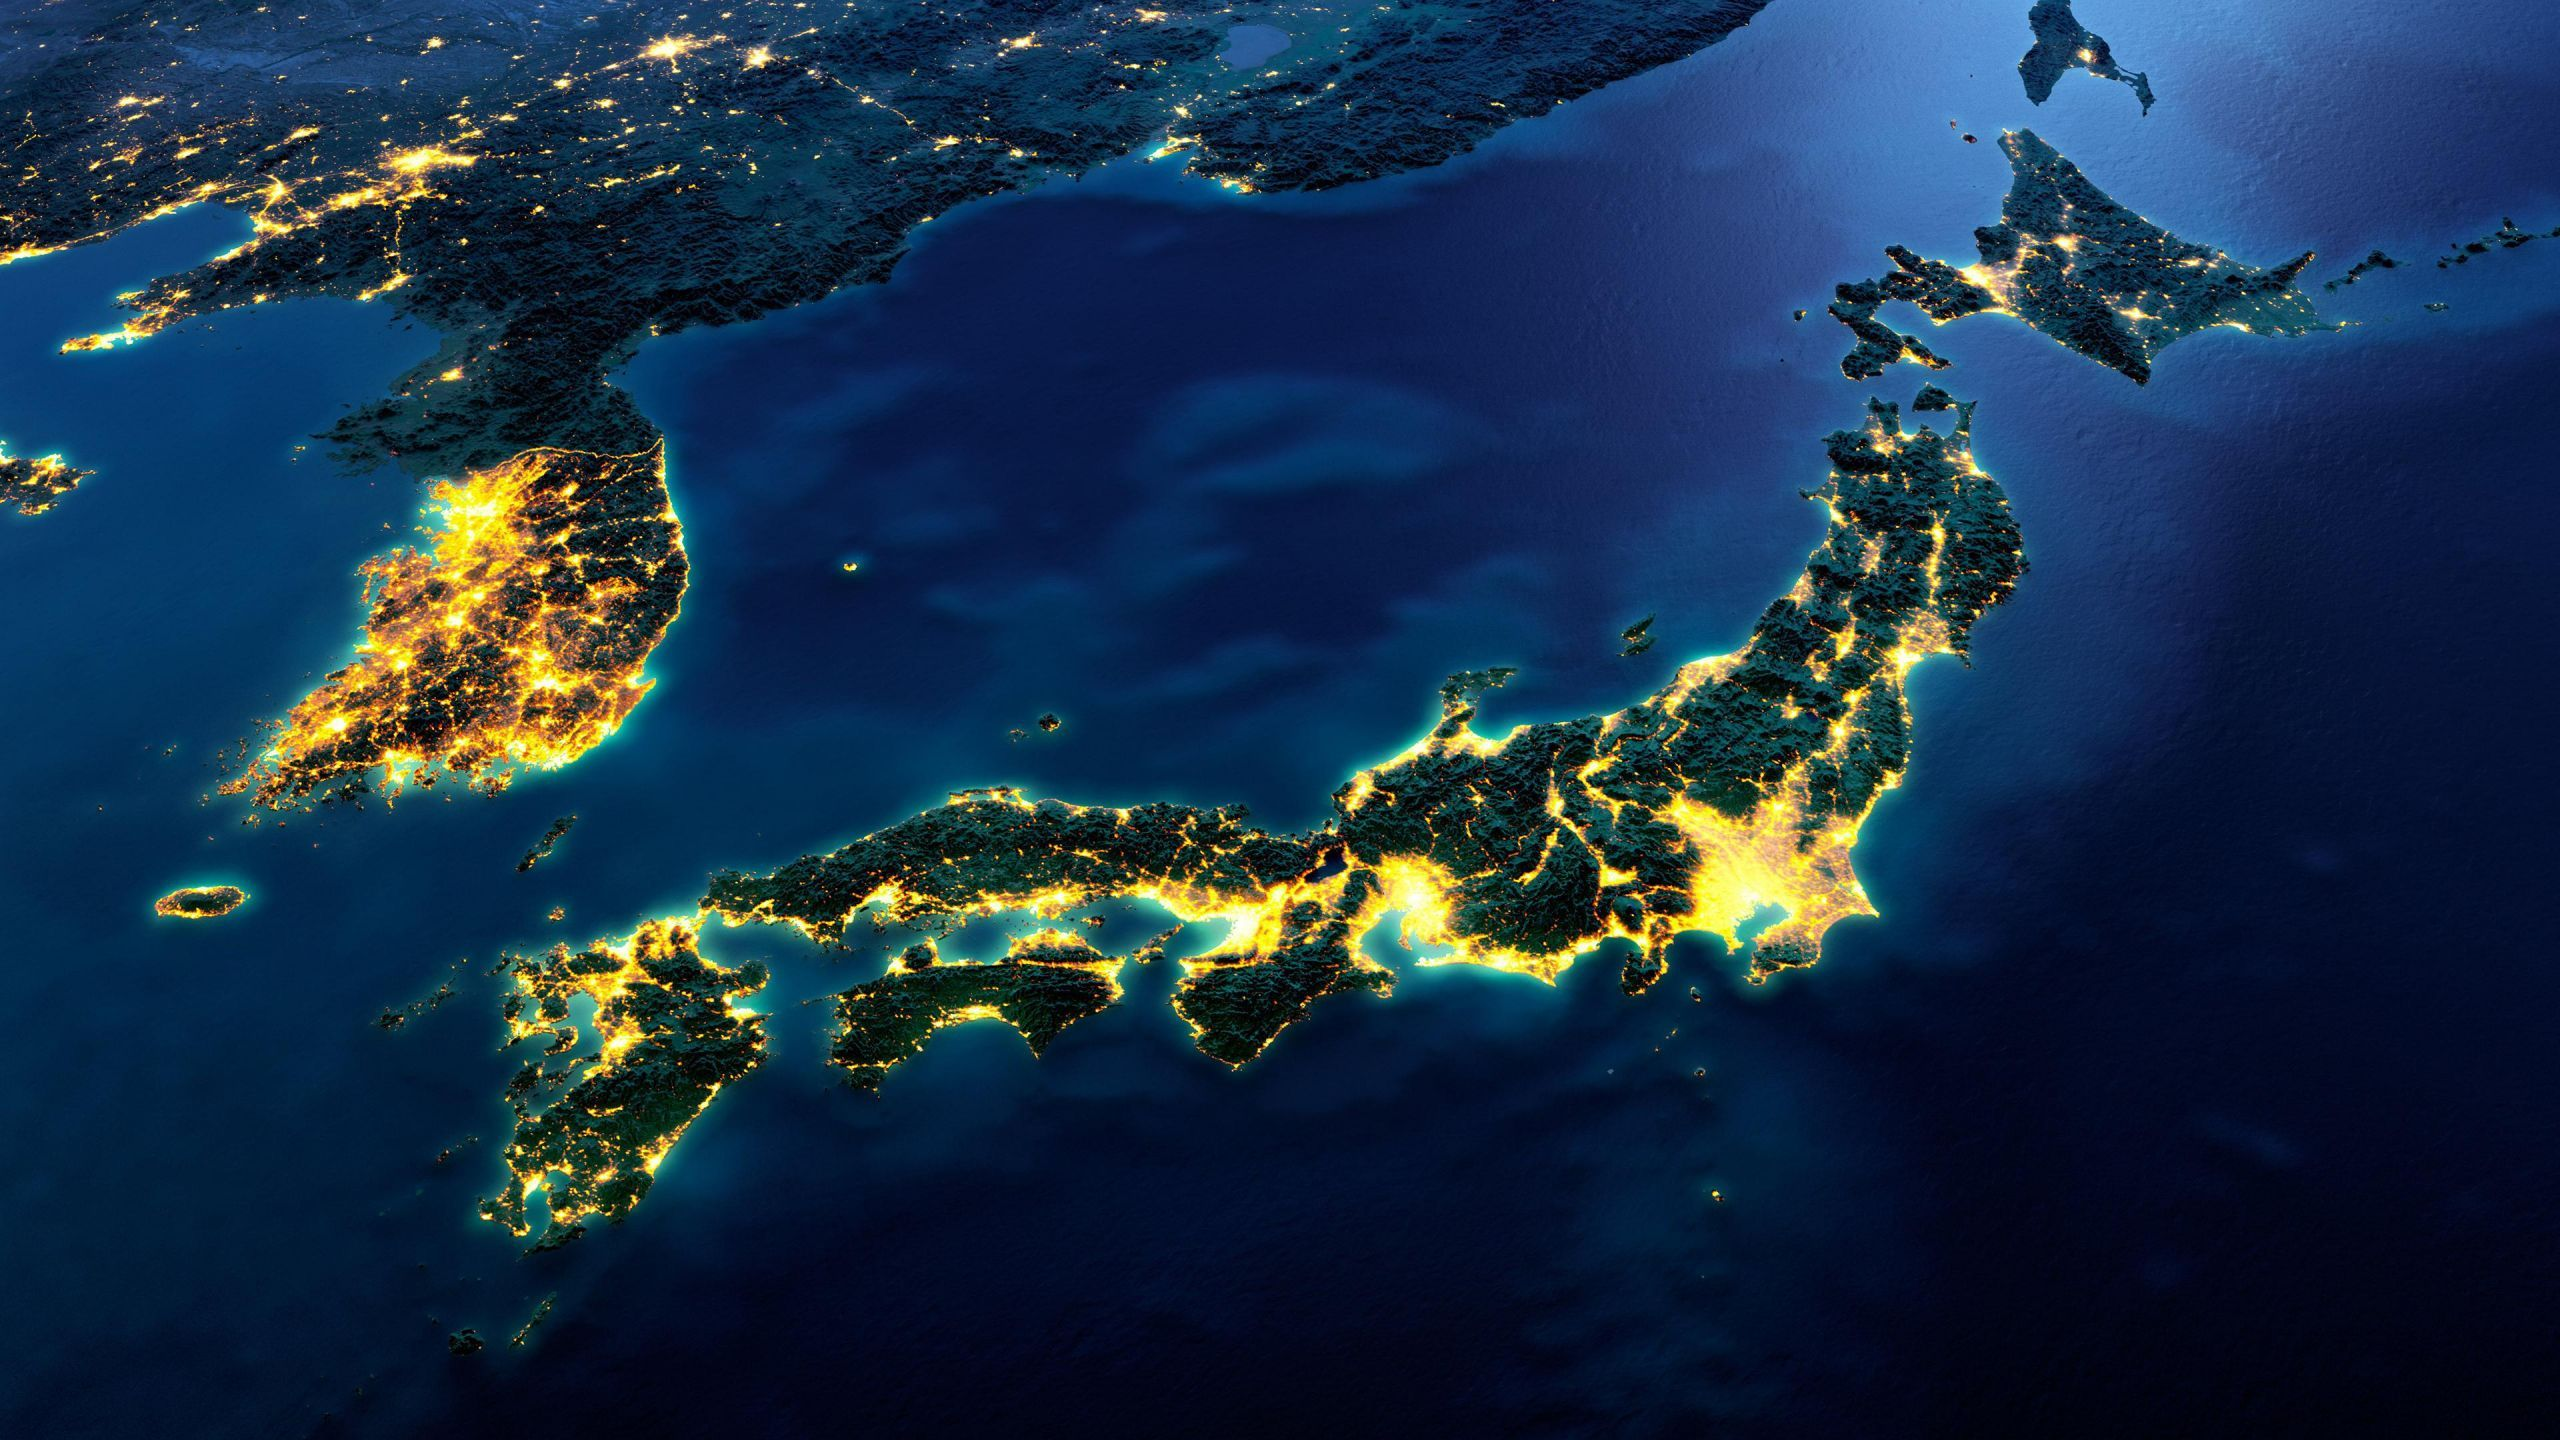 Japan And Korea Lightscapes Wallpaper In 2560x1440 Resolution